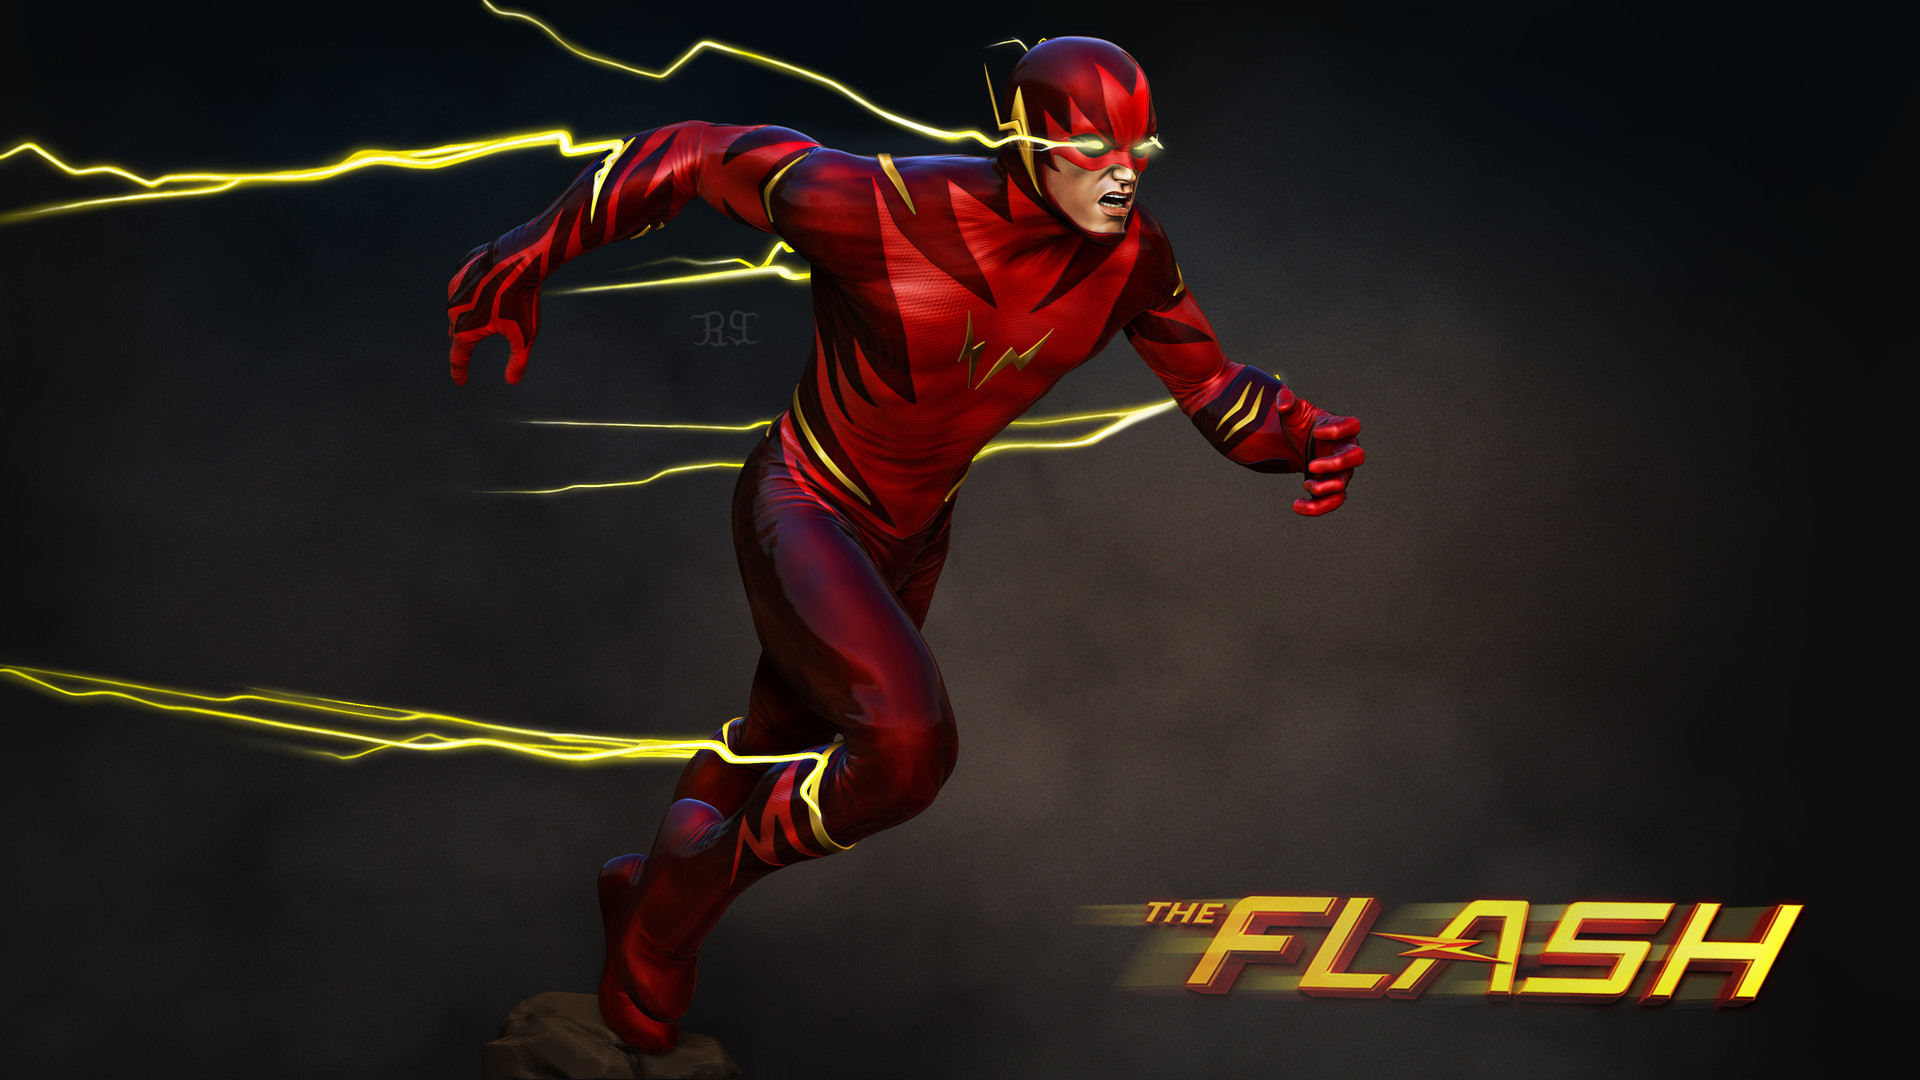 480x854 The Flash Barry Allen Art Android One Hd 4k Wallpapers